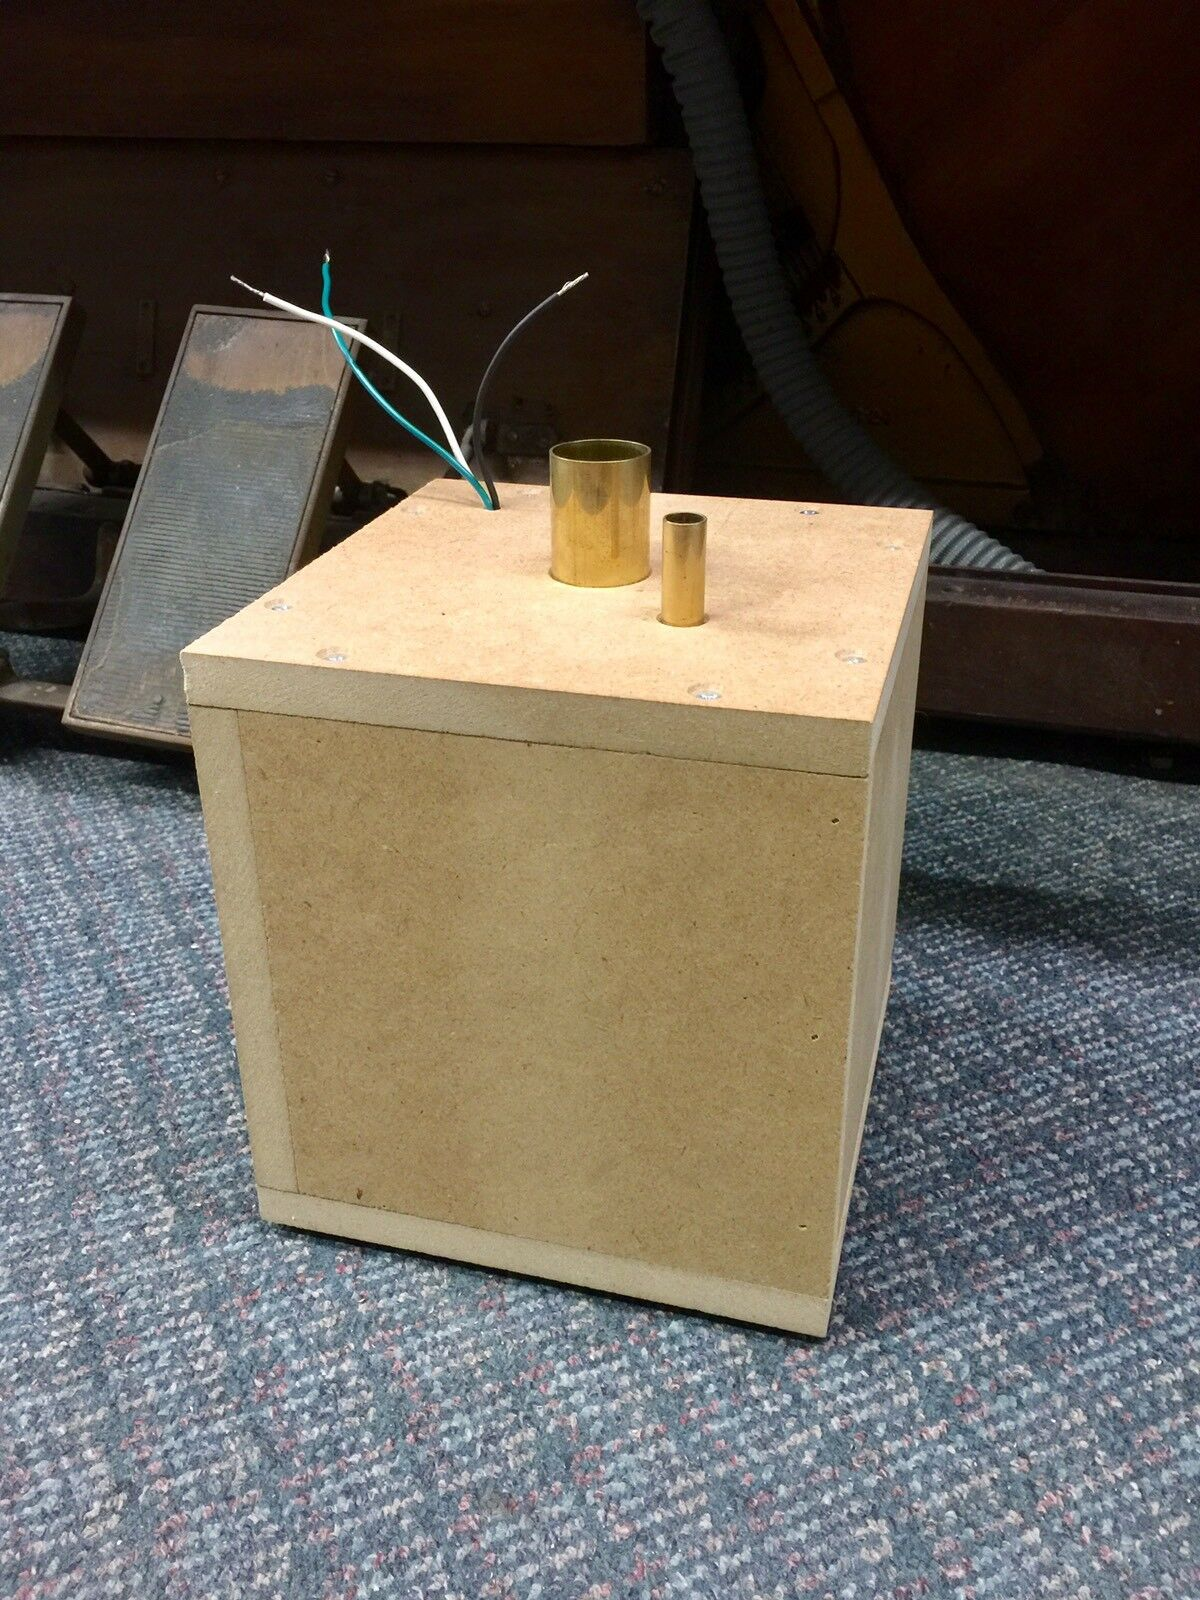 Player Piano Electric Vacuum Motor   Suction Box - Electrify it  SS0-120